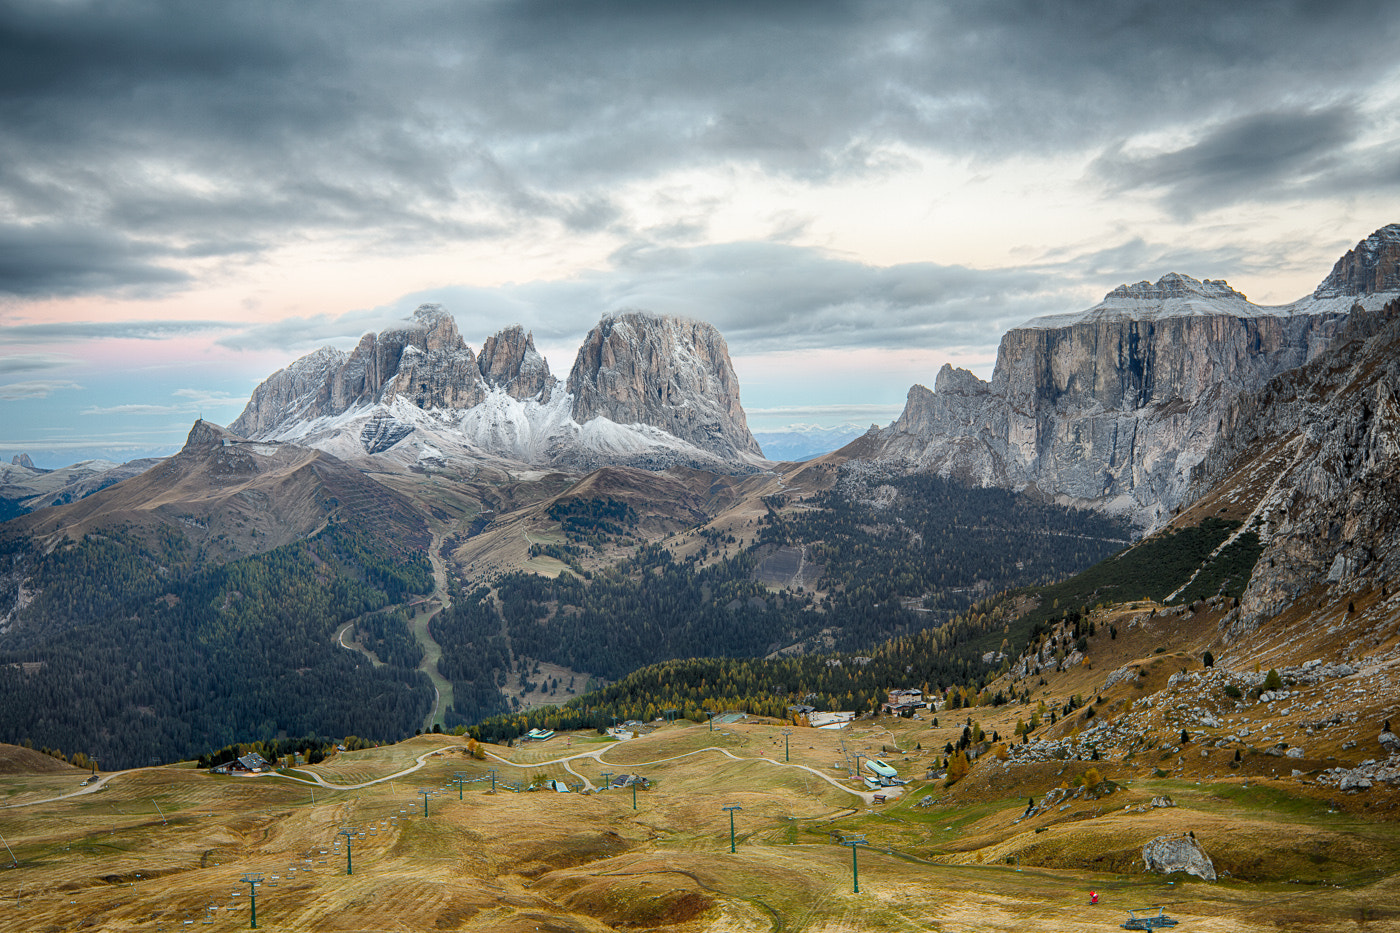 Photograph Dolomites - The Full mounty by Michael Bennati on 500px